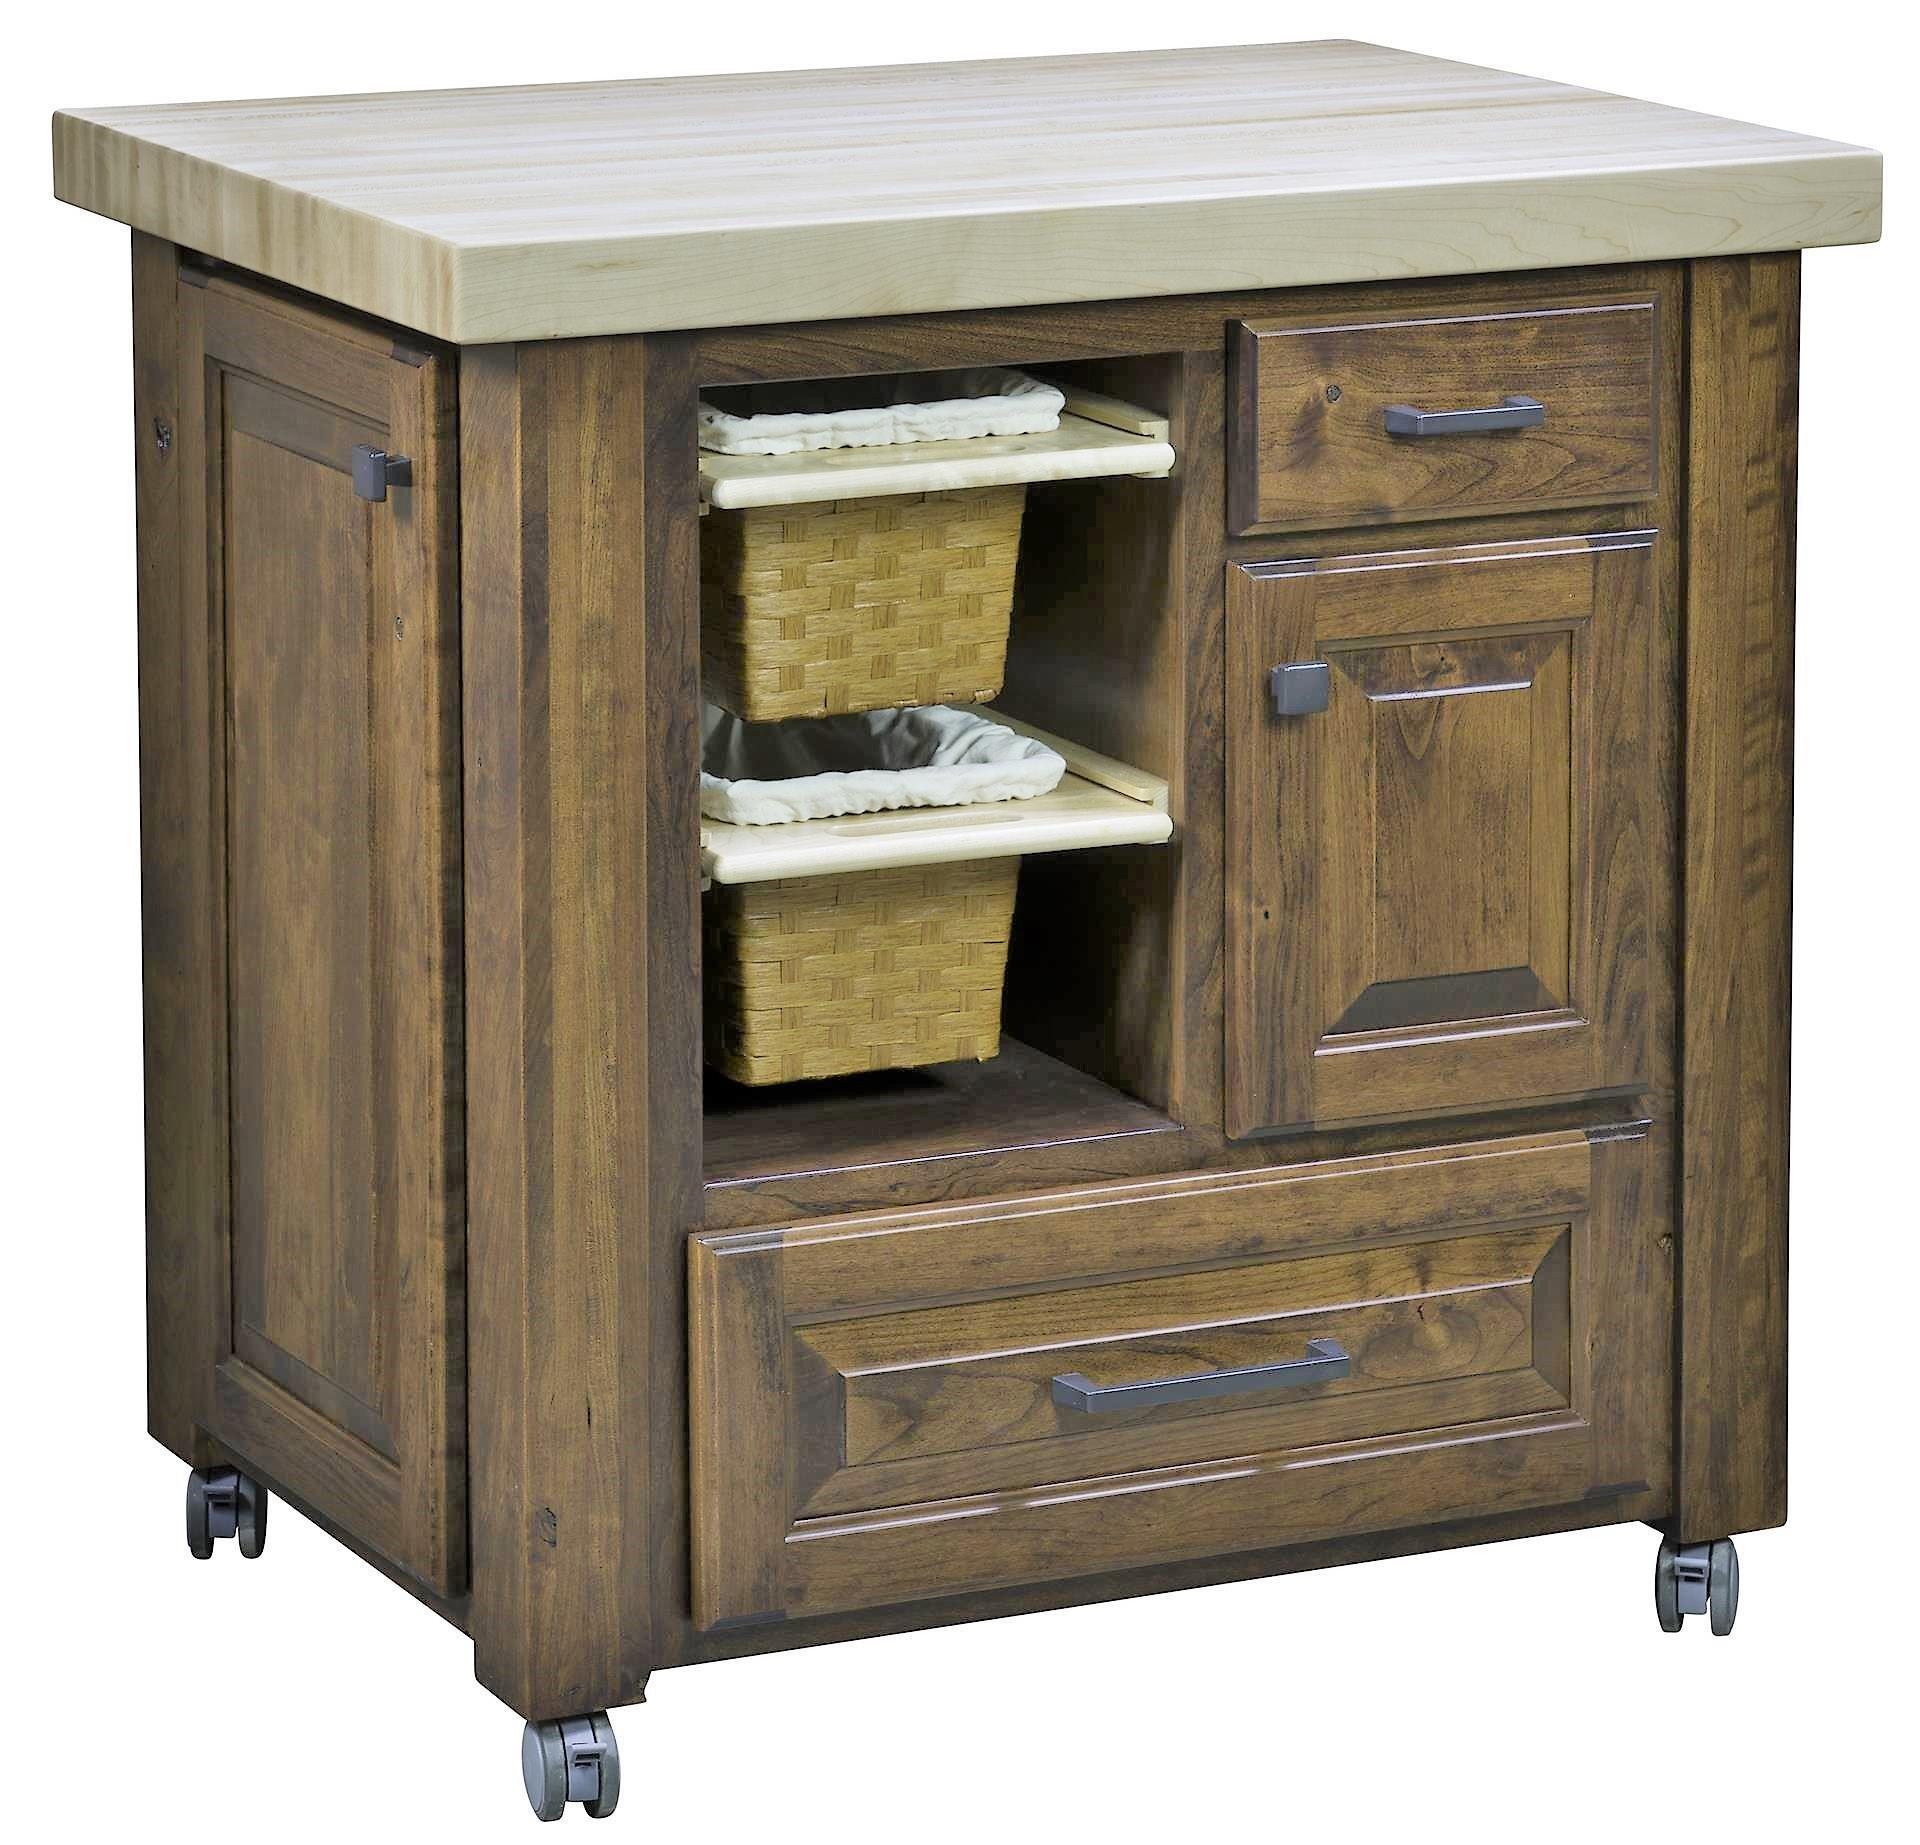 Amish Kitchen: Kitchen Island With Baskets From DutchCrafters Amish Furniture